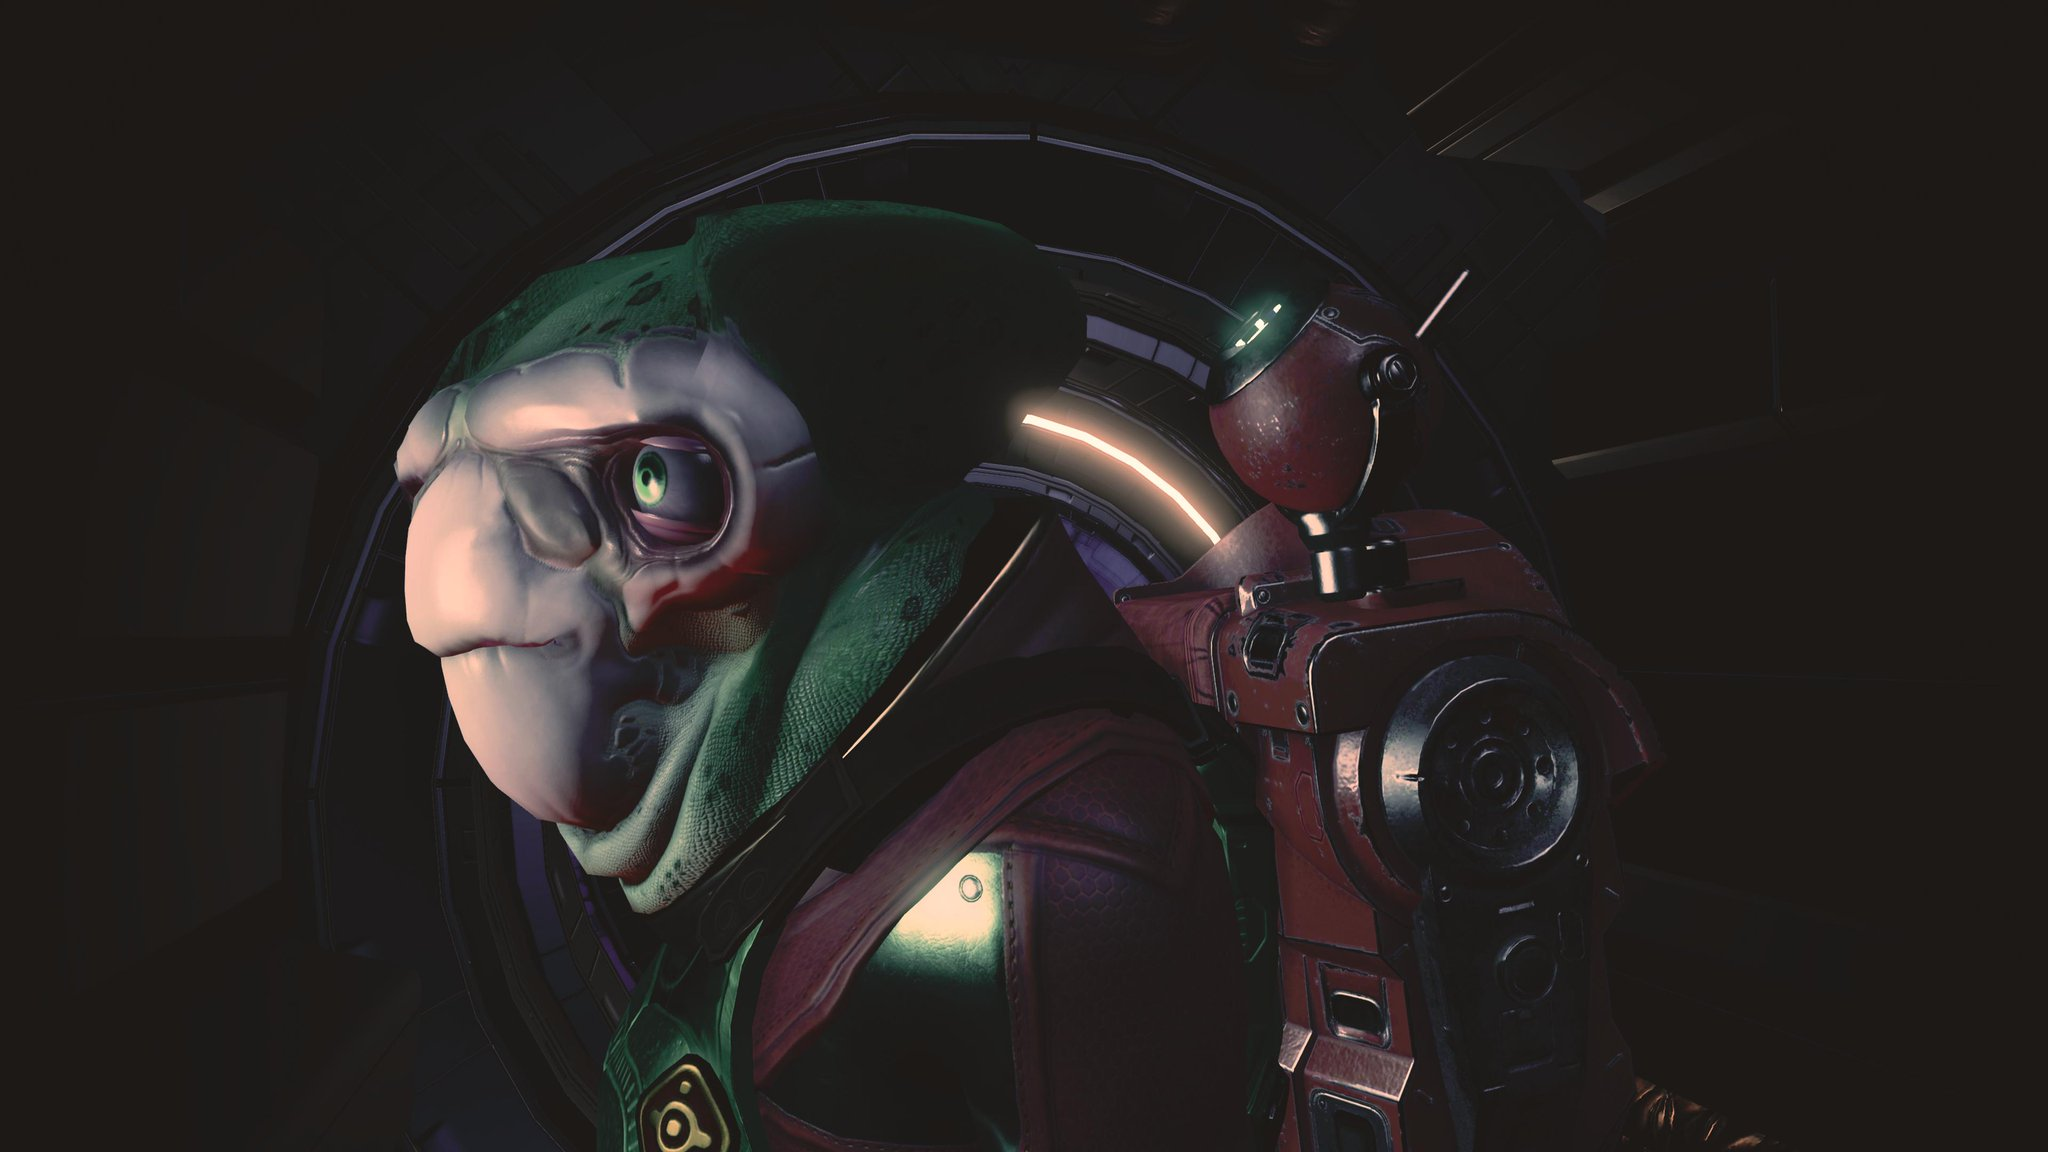 A side on picture of an alien traveller, green with a white patch, boggly eyes and a thoughtful expression.